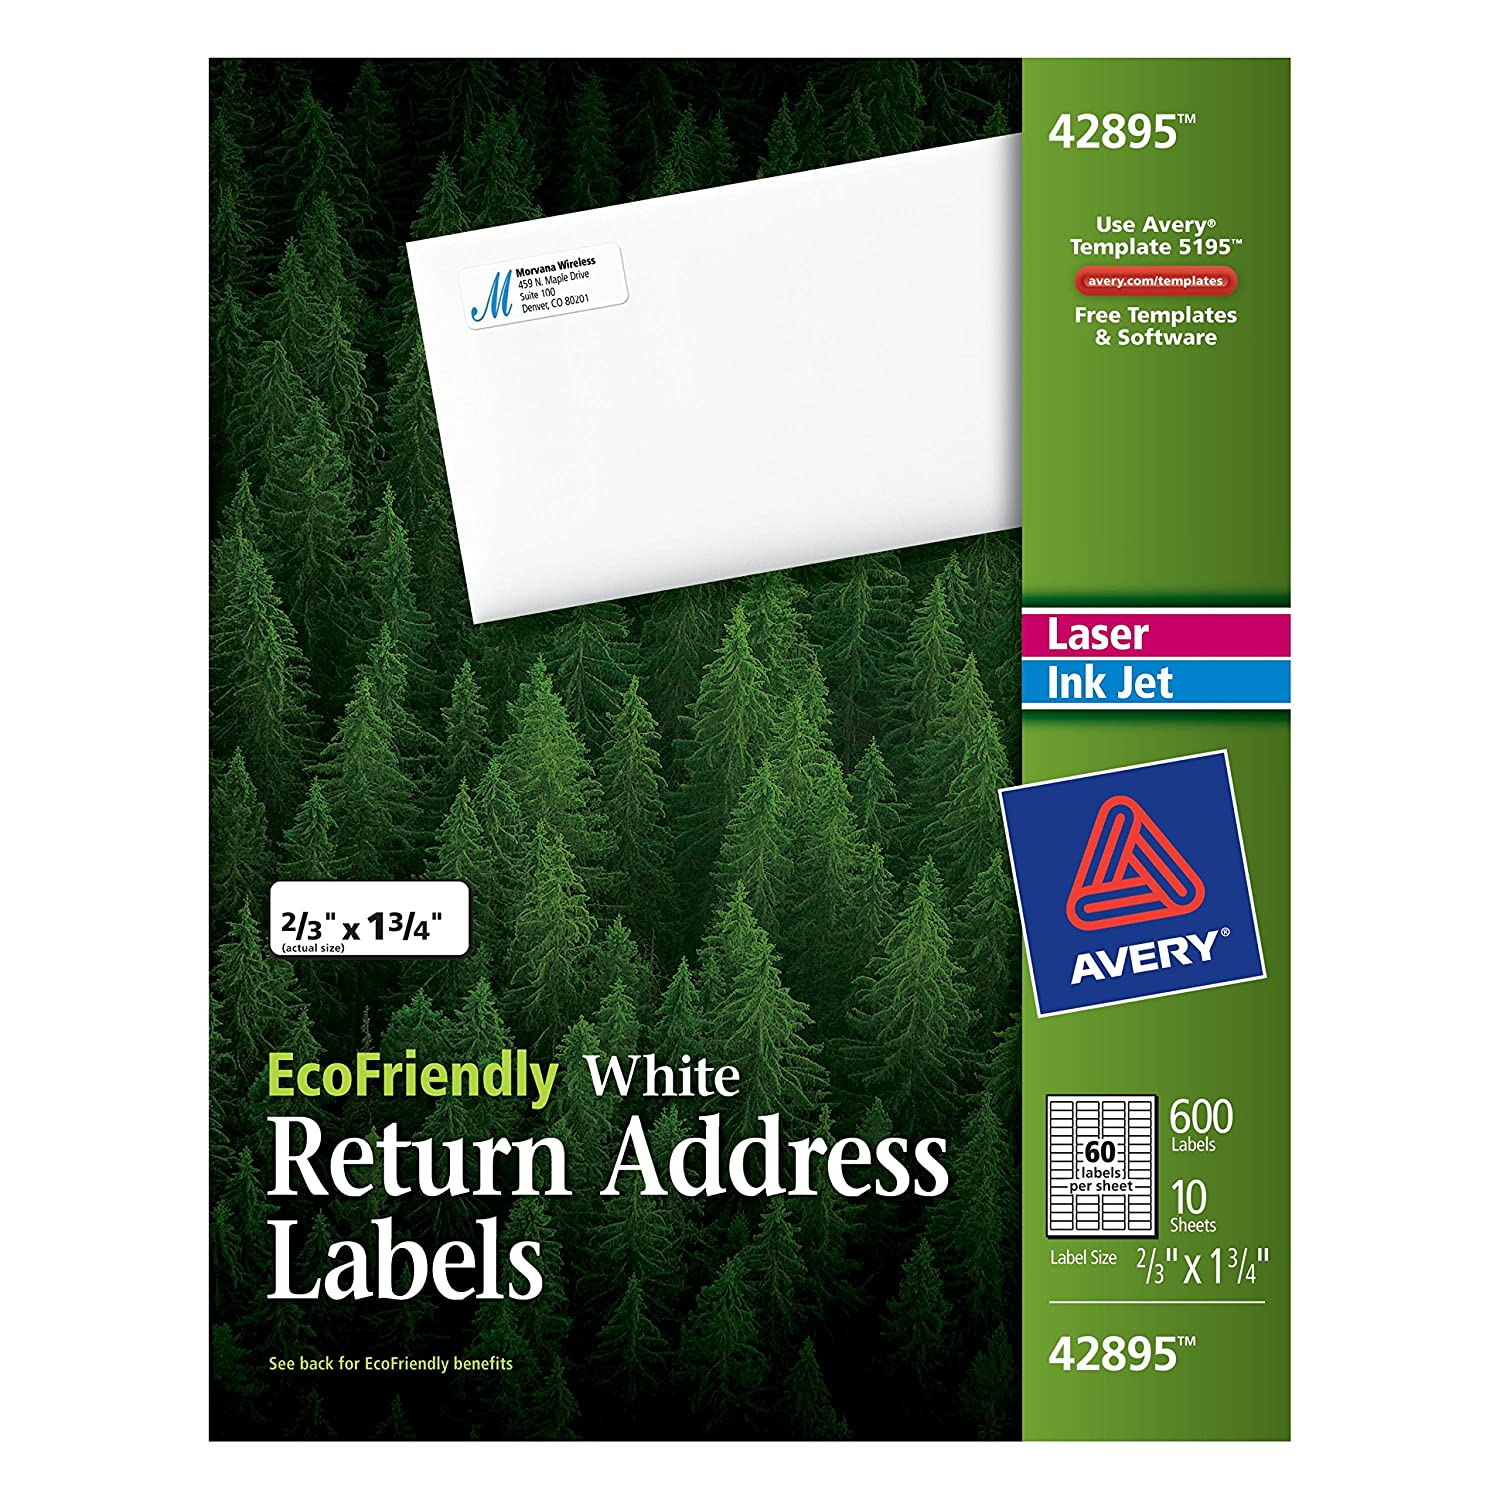 8195 template - Amazon Com Avery Return Address Labels White 0 66 X 1 75